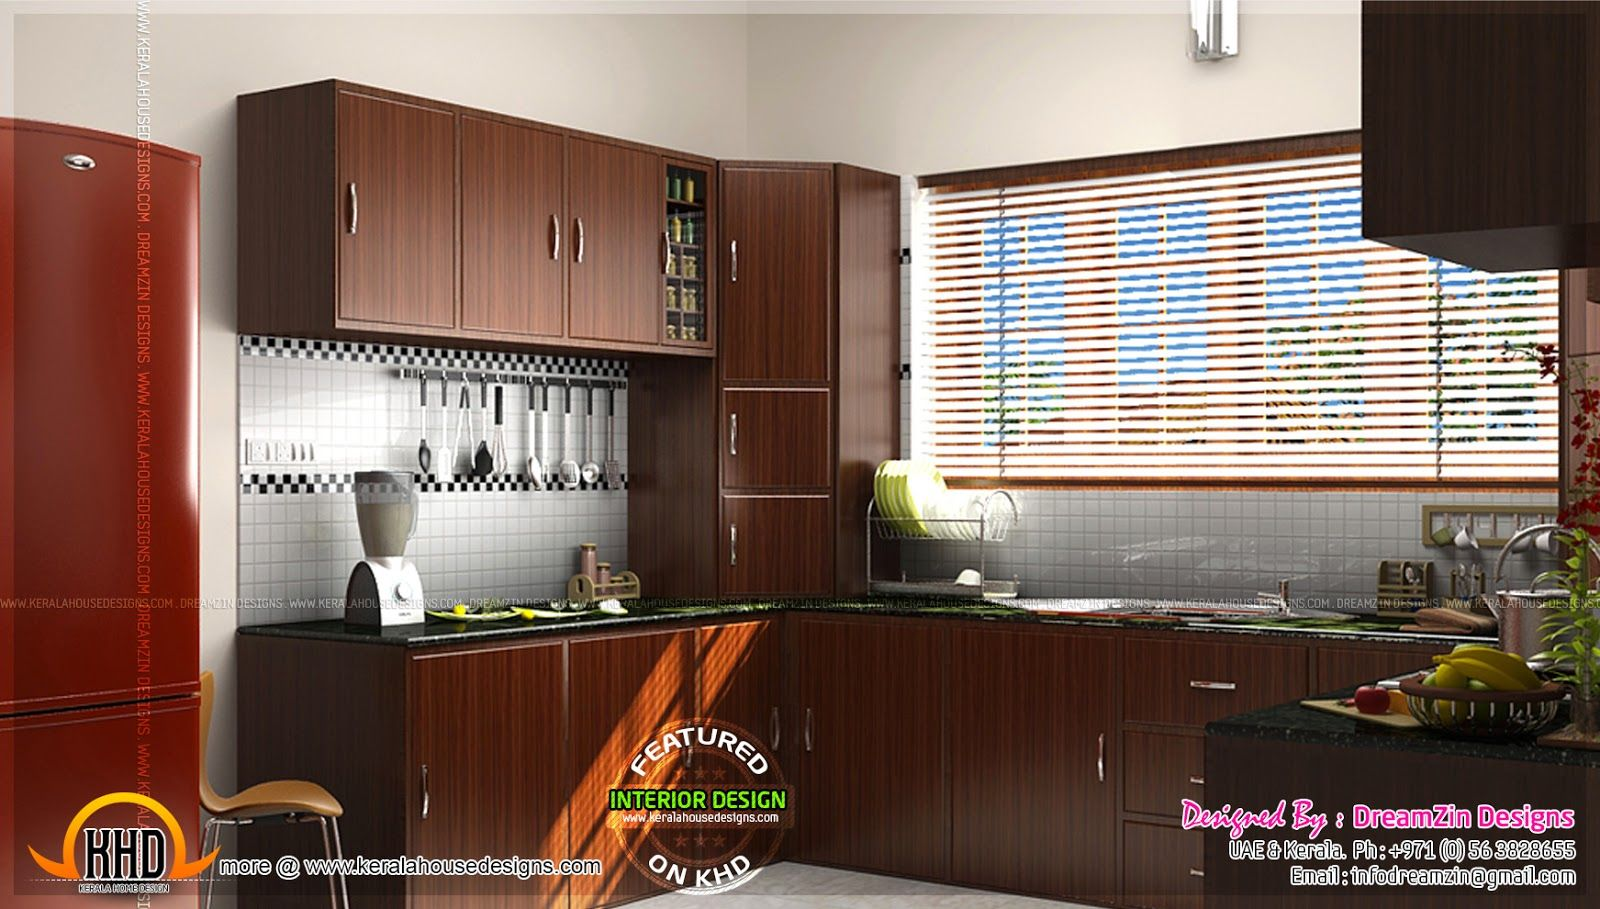 Kerala kitchen interior design modular kitchen kerala for New kitchen designs in kerala